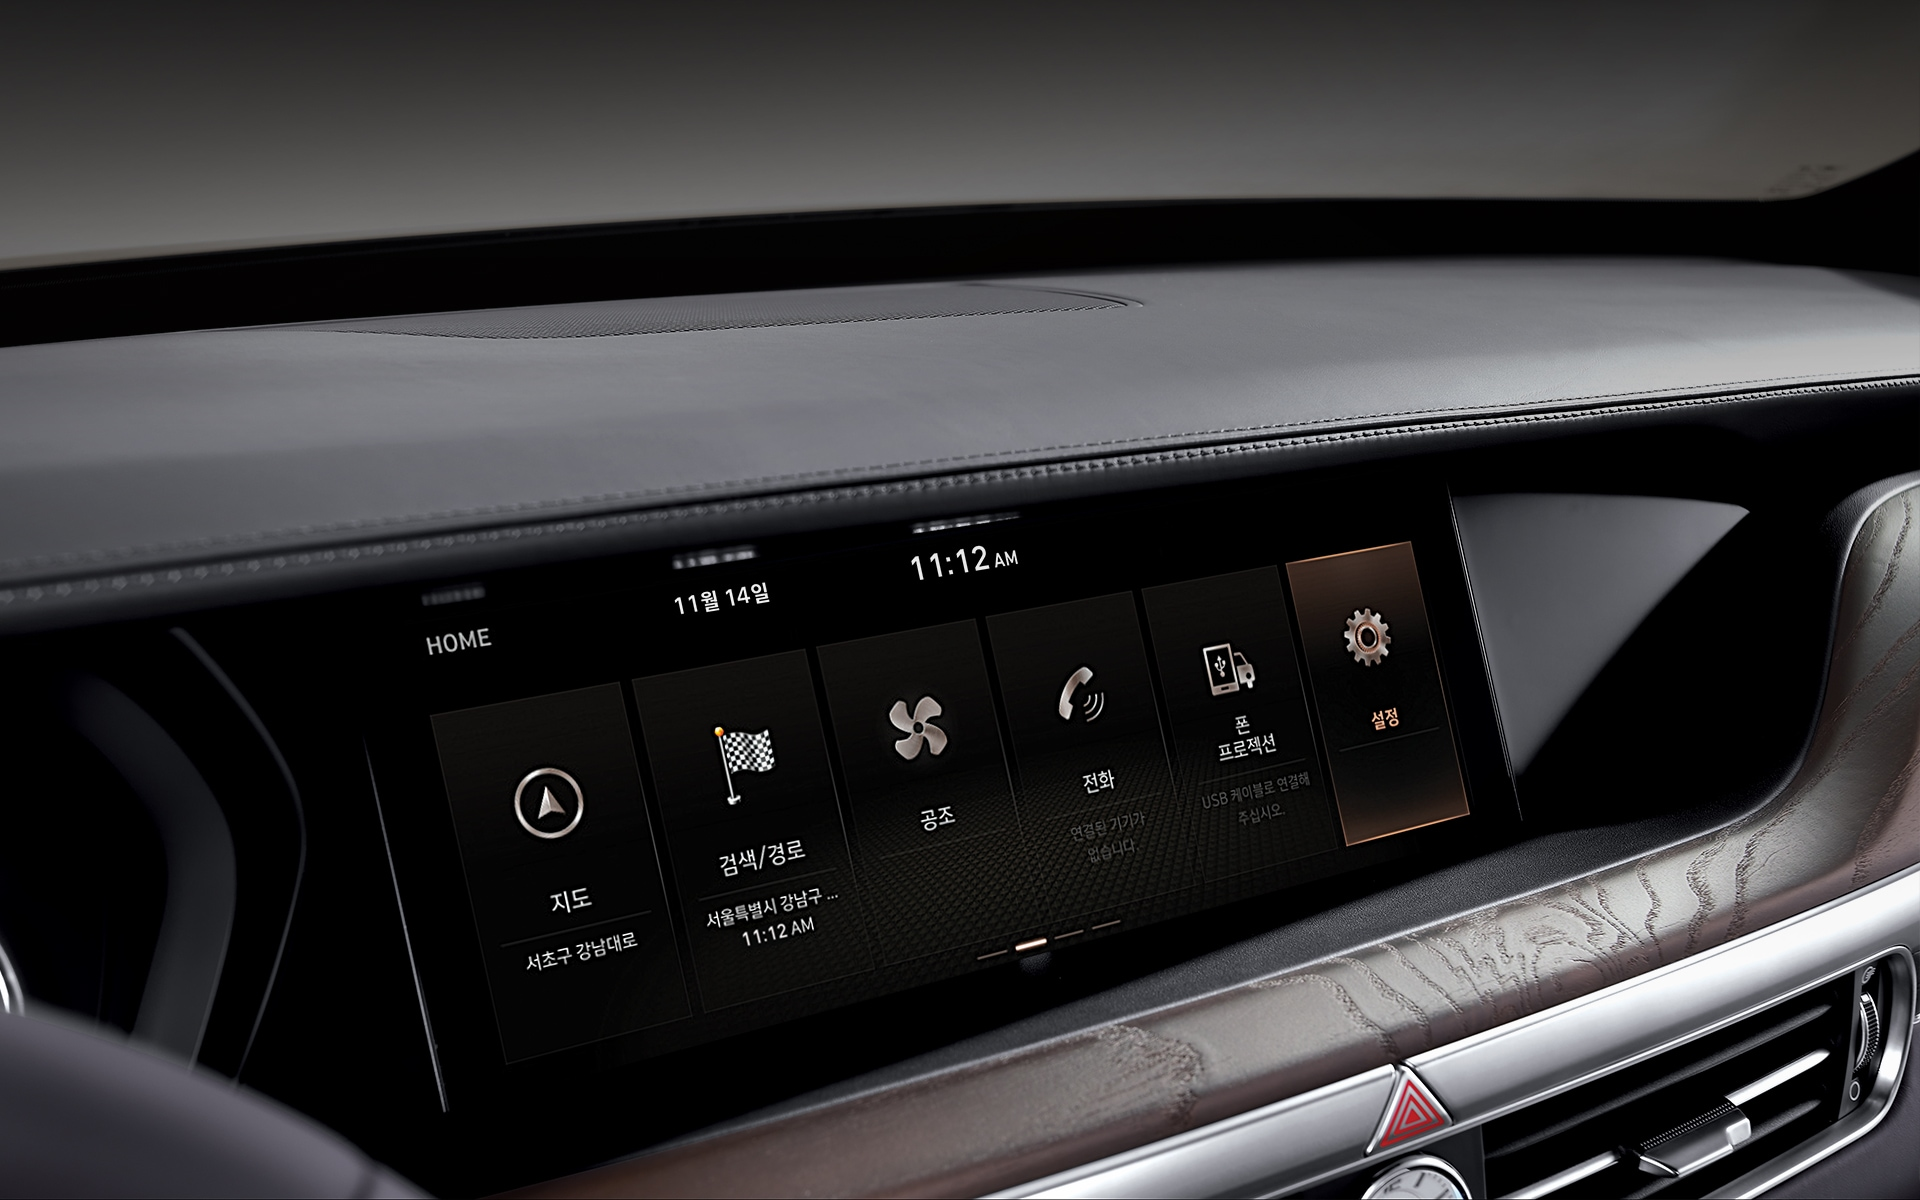 GENESIS G90 Convenience Features - Over the Air Navigation Update